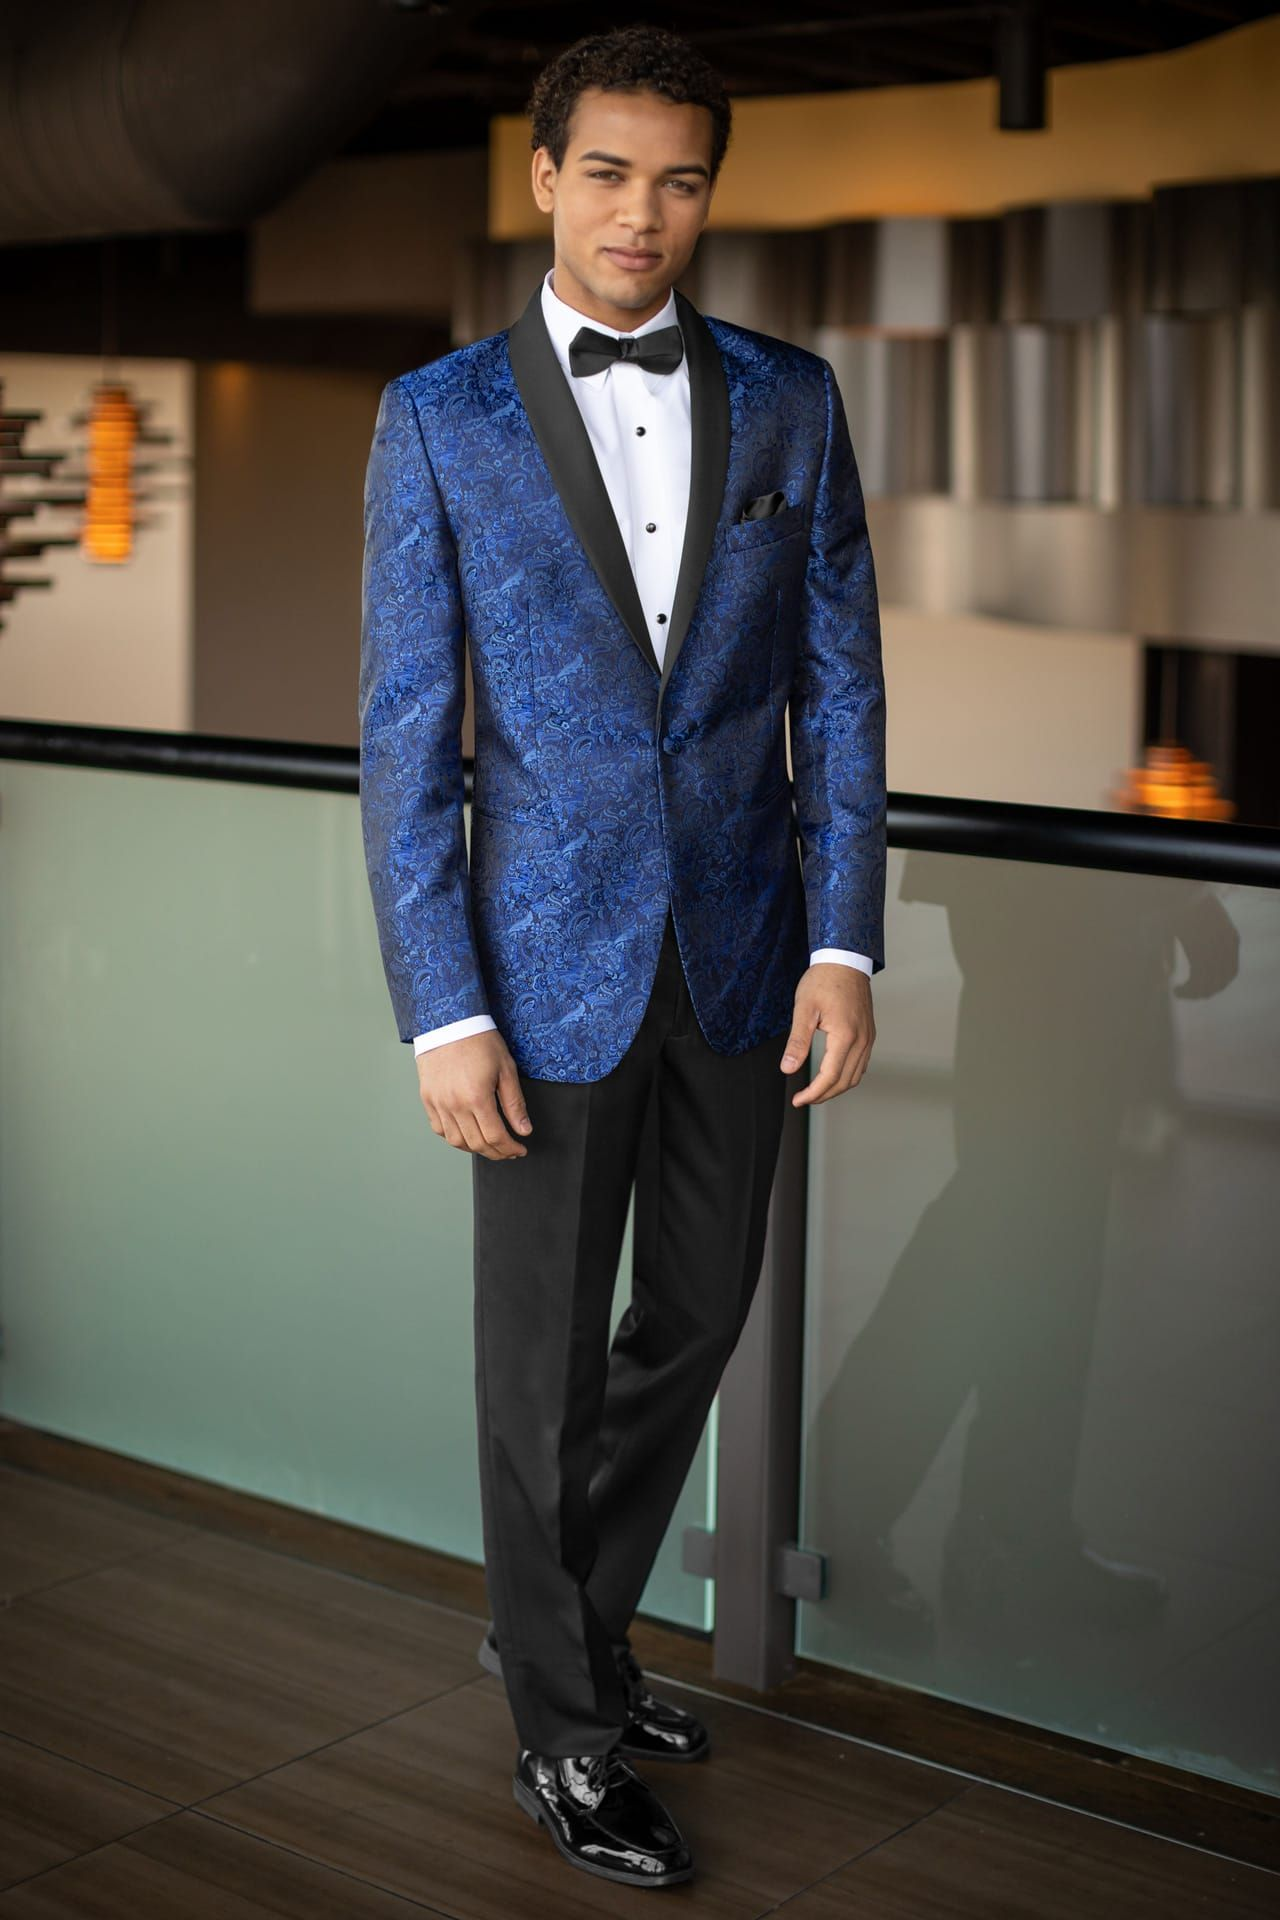 Pin by Krista Smith on Wedding tux in 2020 Casual